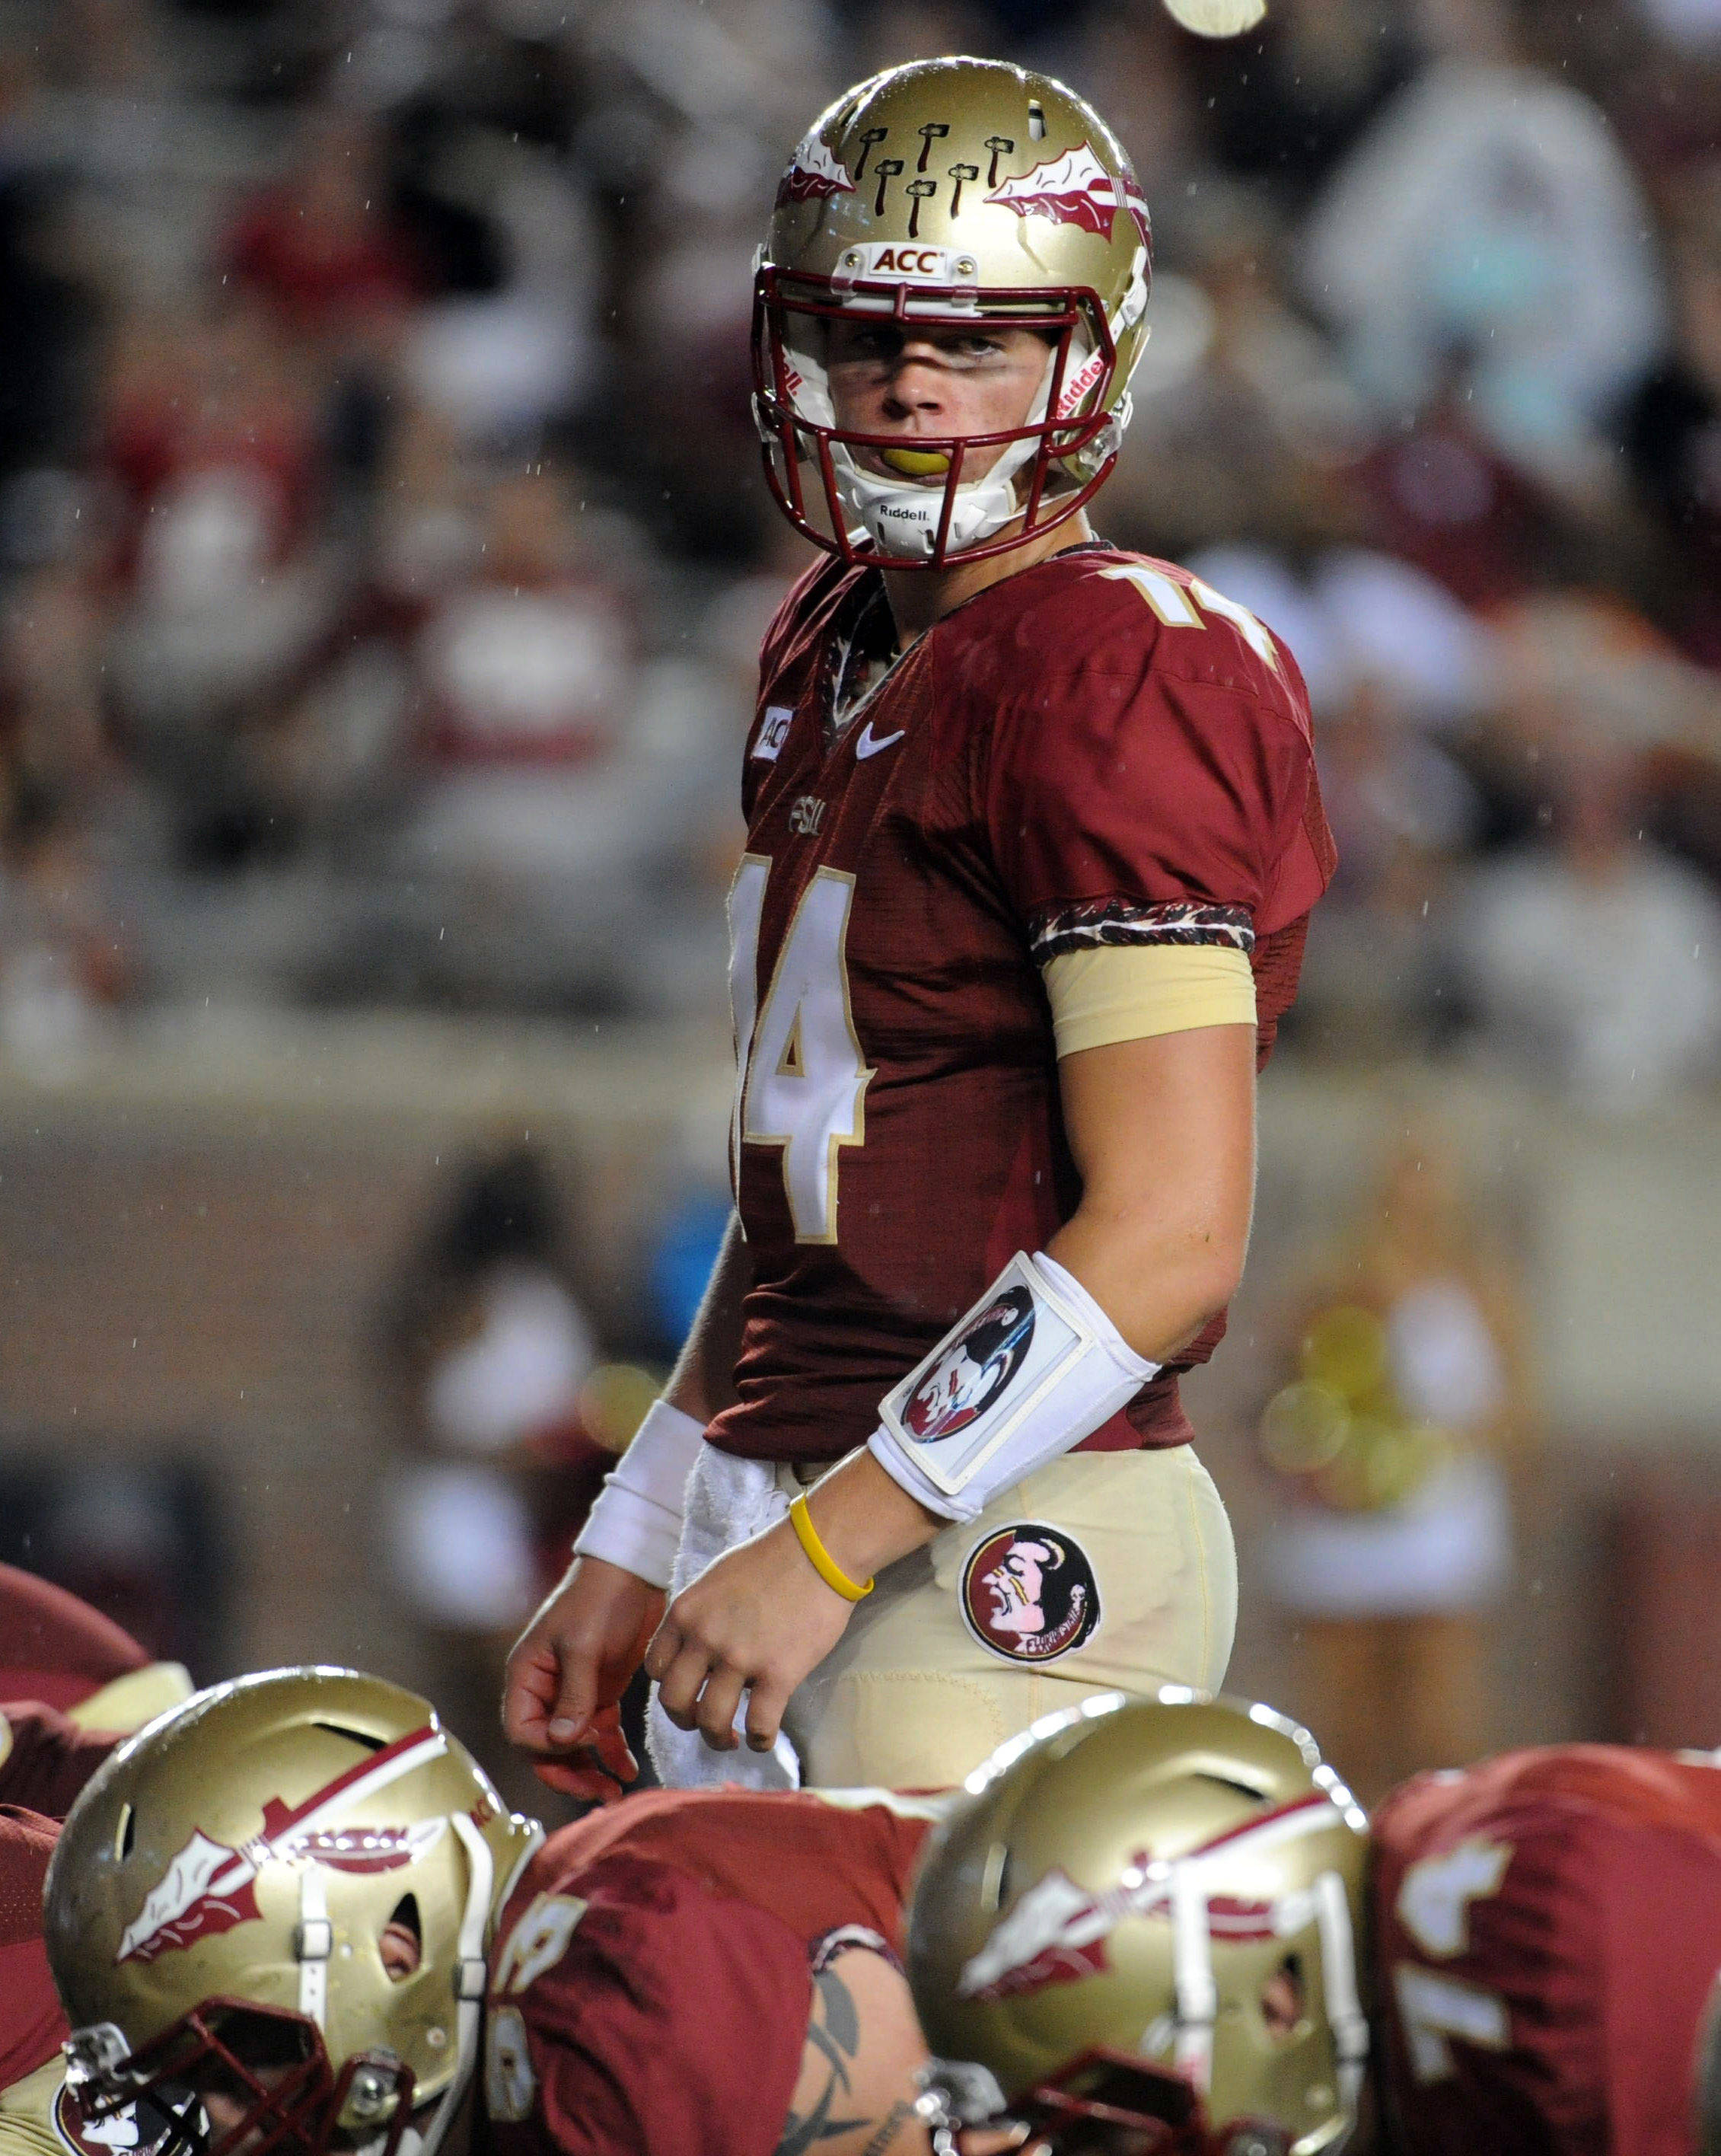 Florida State Seminoles quarterback Jacob Coker (14) prepares to snap the ball during the second half of the game against the Bethune-Cookman Wildcats. (Melina Vastola-USA TODAY Sports)